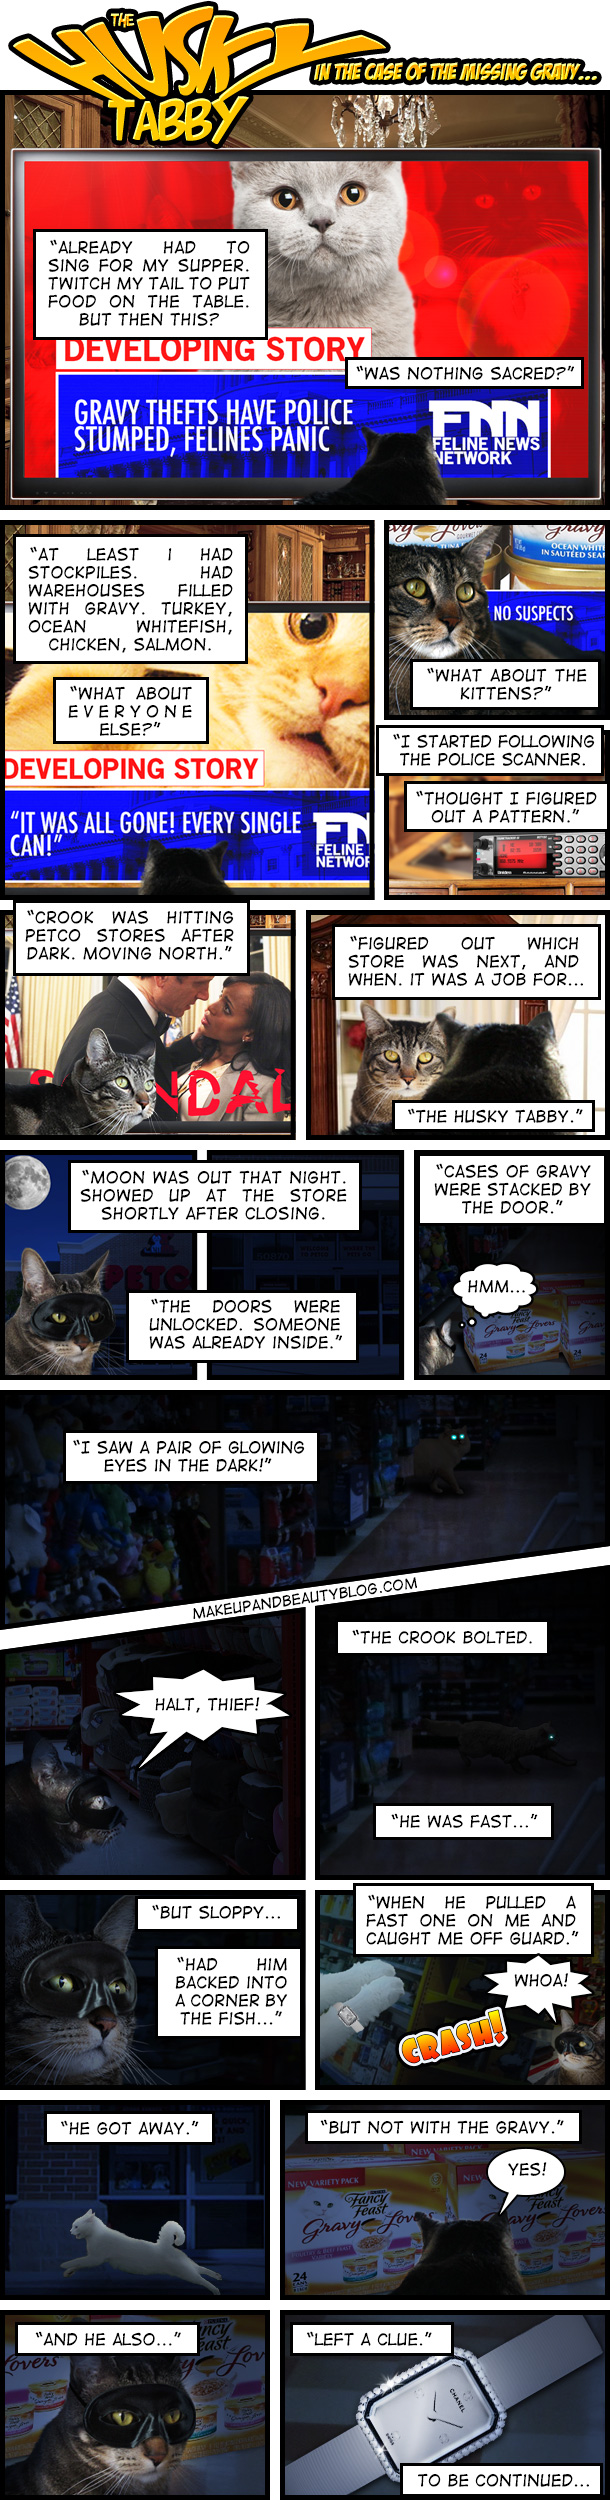 Tabs the Cat in The Husky Tabby: A Makeup and Beauty Blog Comic